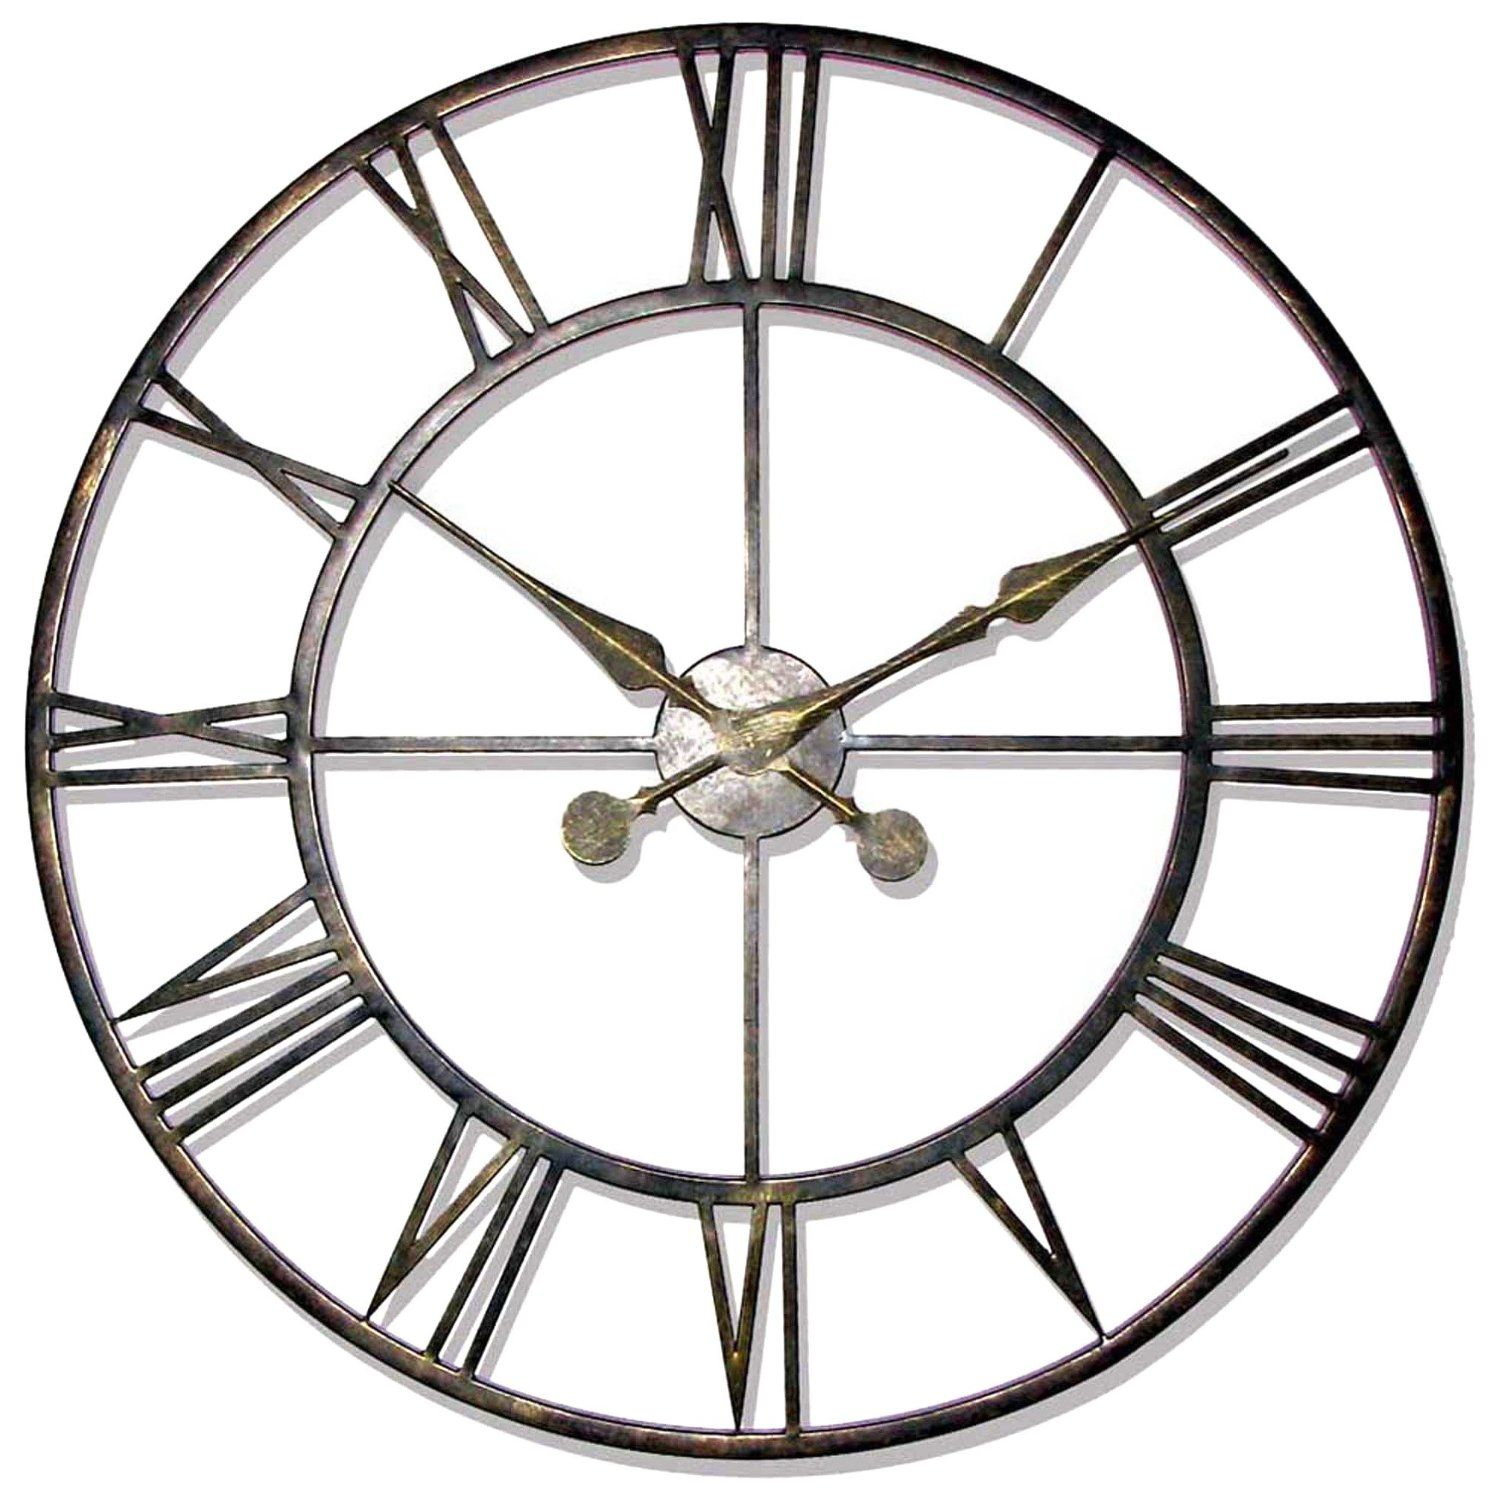 Wall Decor Clocks Modern : Stylish large wall clocks fun fashionable home